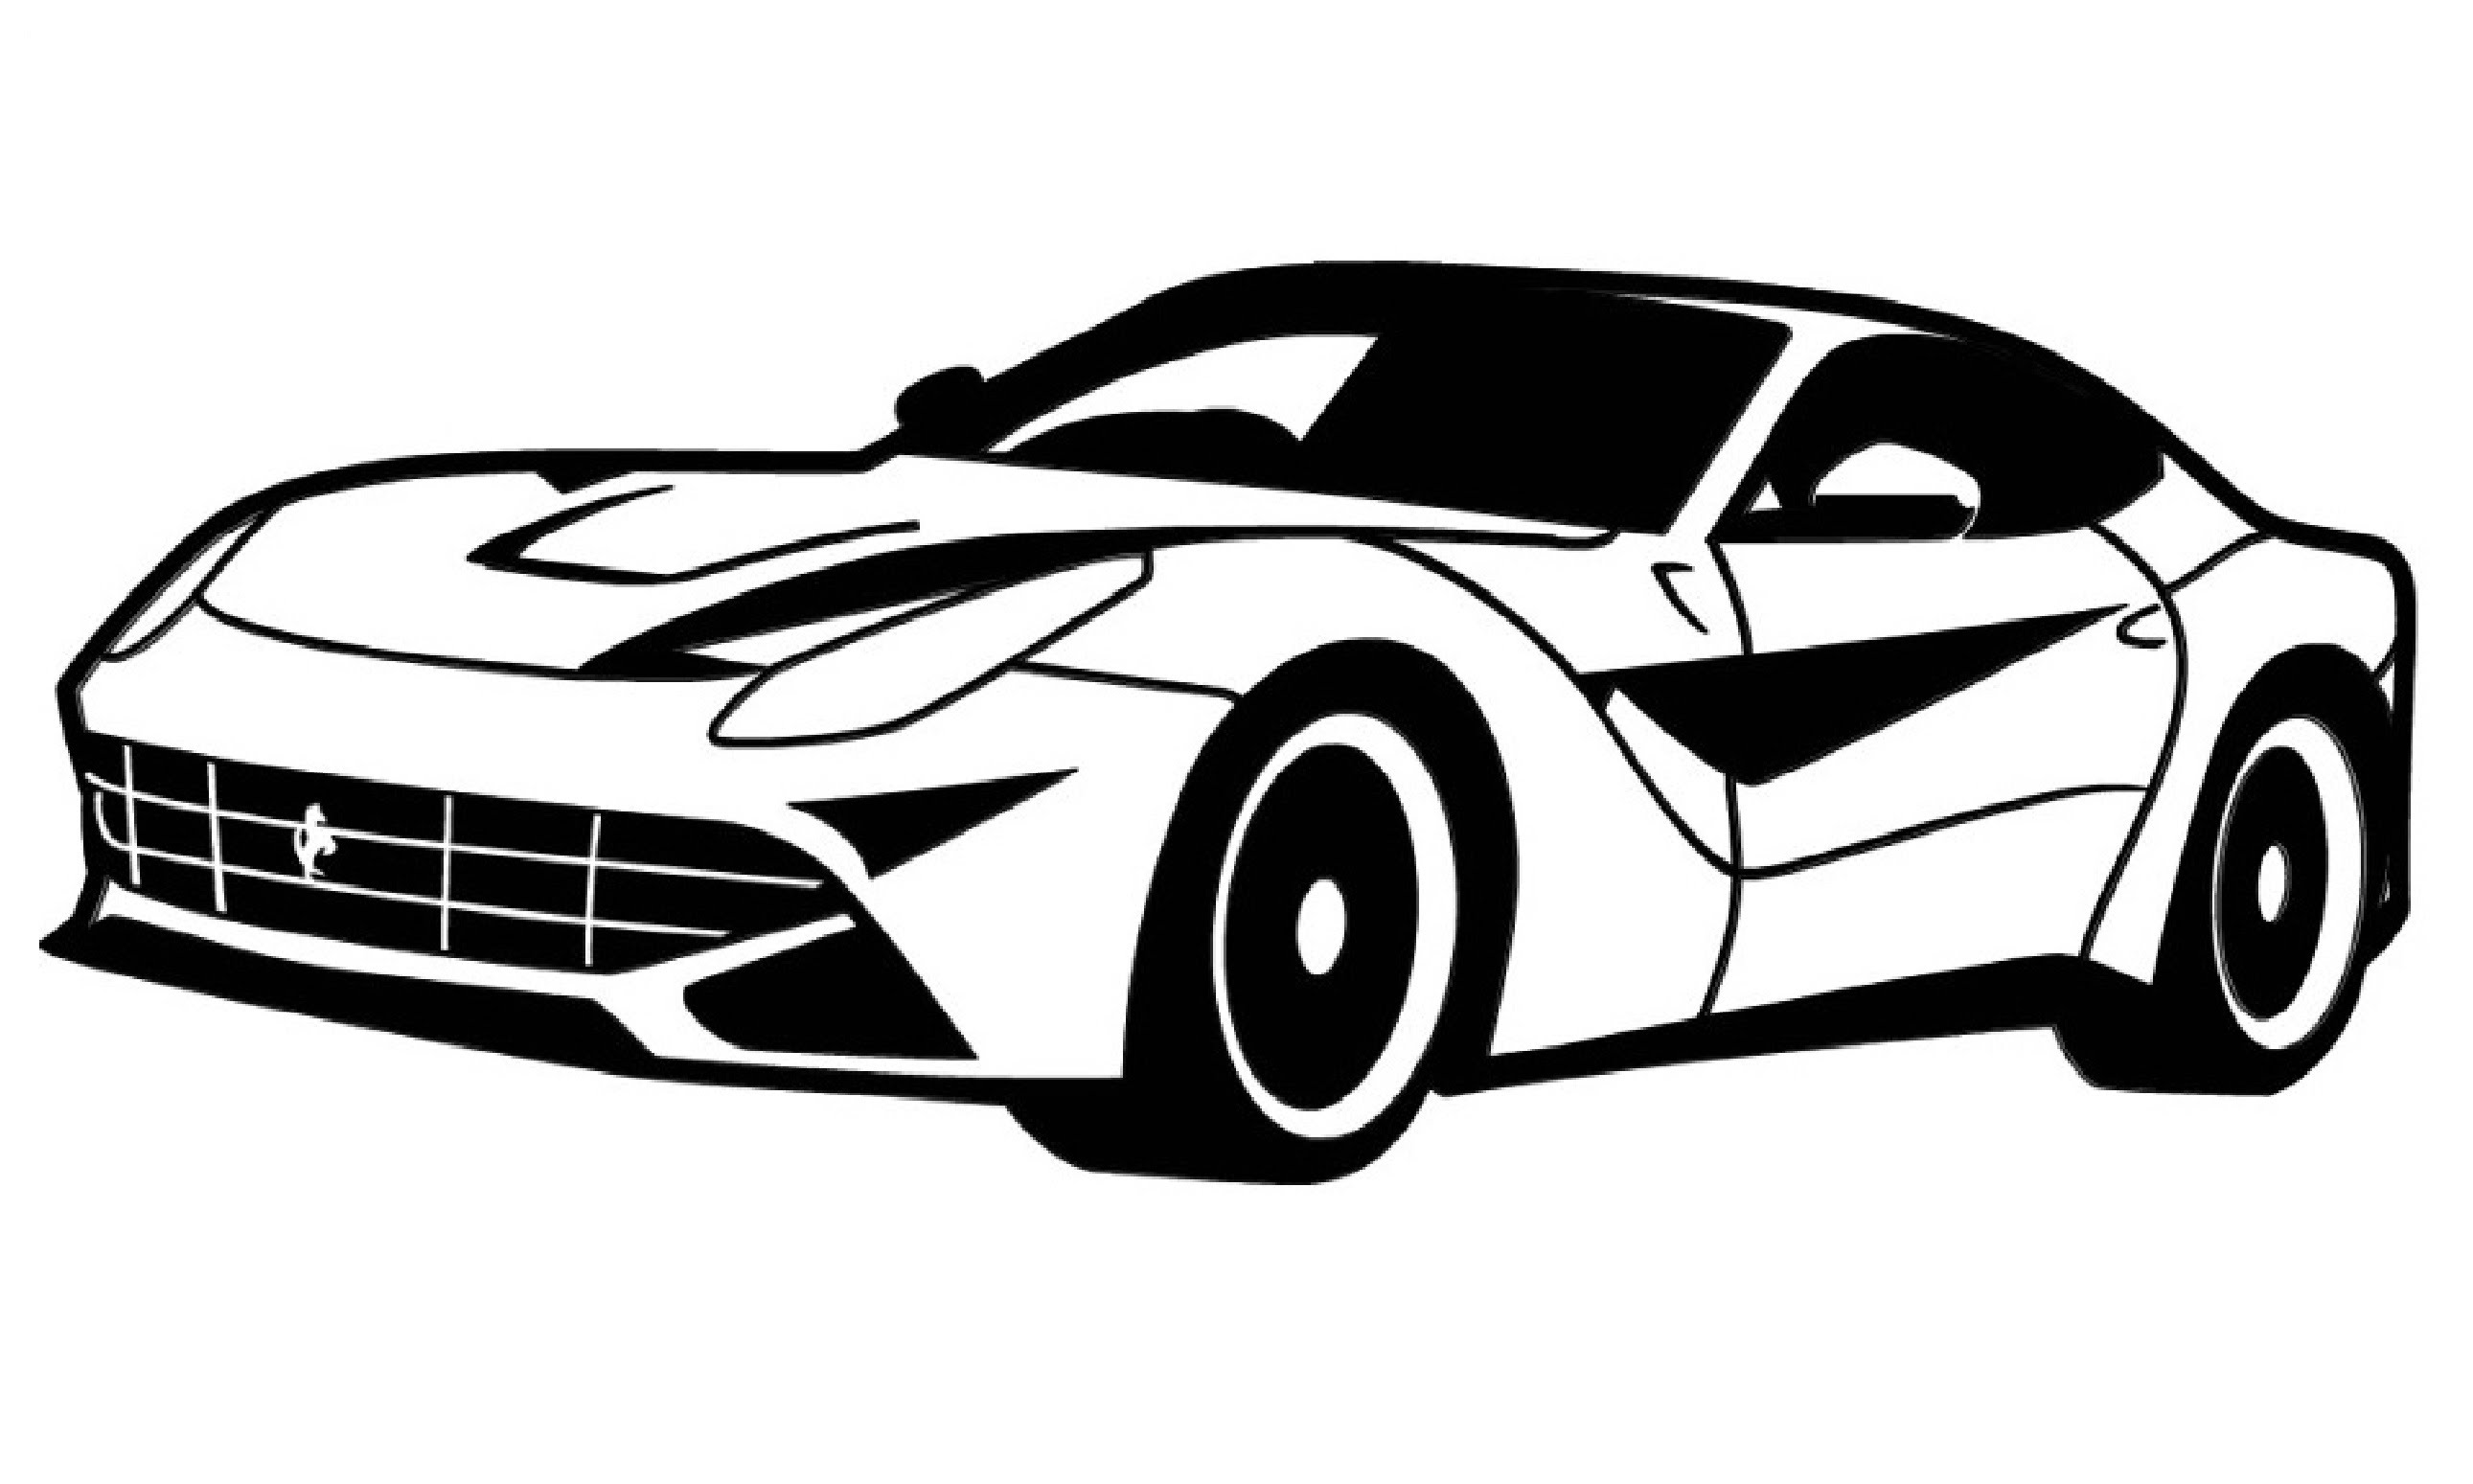 Black And White Car Drawings